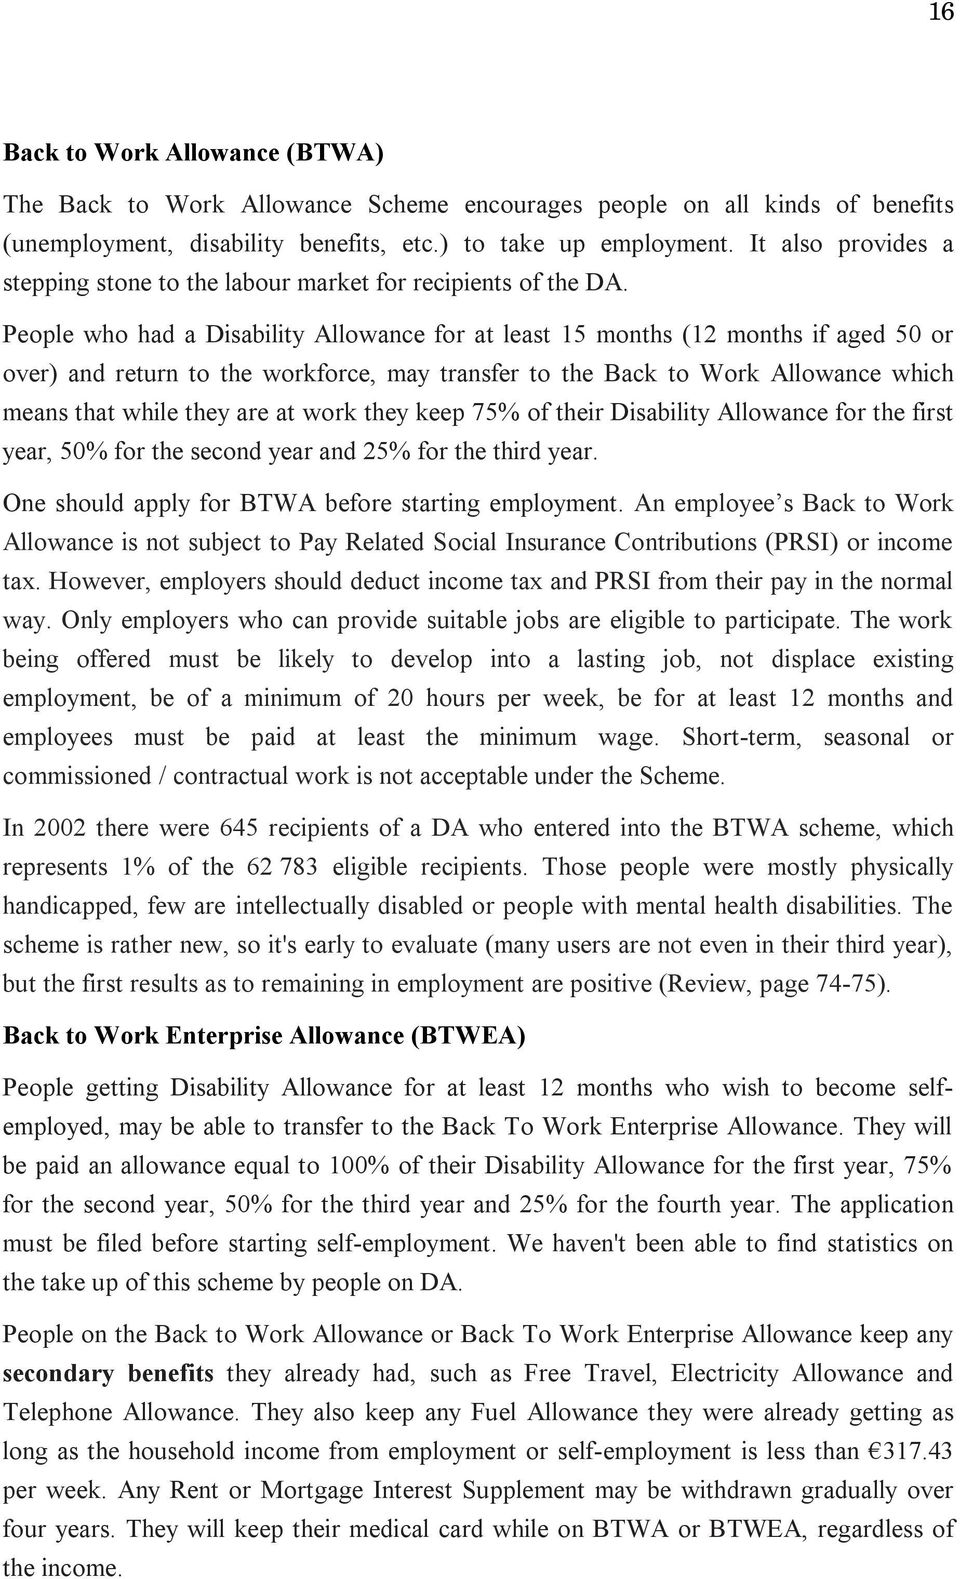 People who had a Disability Allowance for at least 15 months (12 months if aged 50 or over) and return to the workforce, may transfer to the Back to Work Allowance which means that while they are at